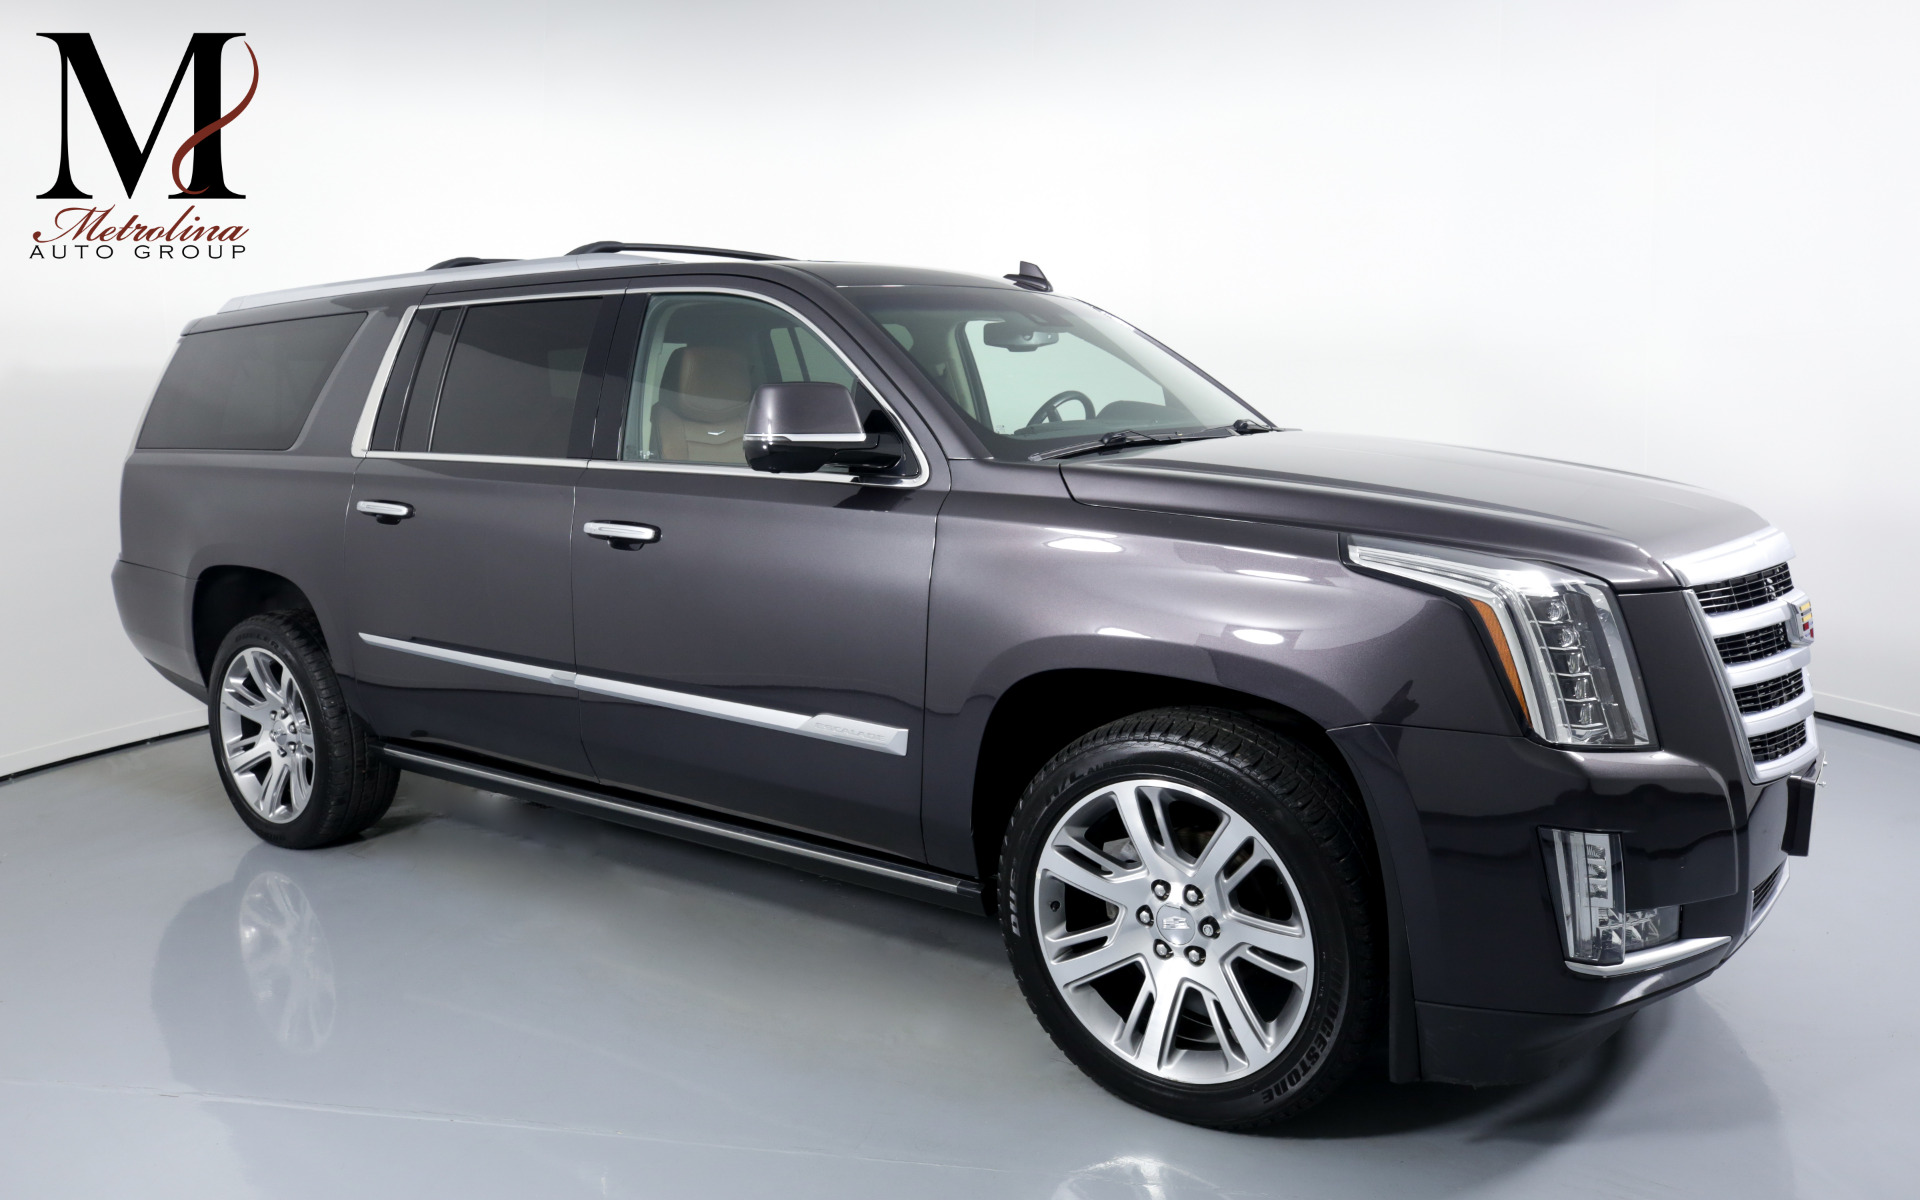 Used 2016 Cadillac Escalade ESV Premium Collection for sale $44,995 at Metrolina Auto Group in Charlotte NC 28217 - 1